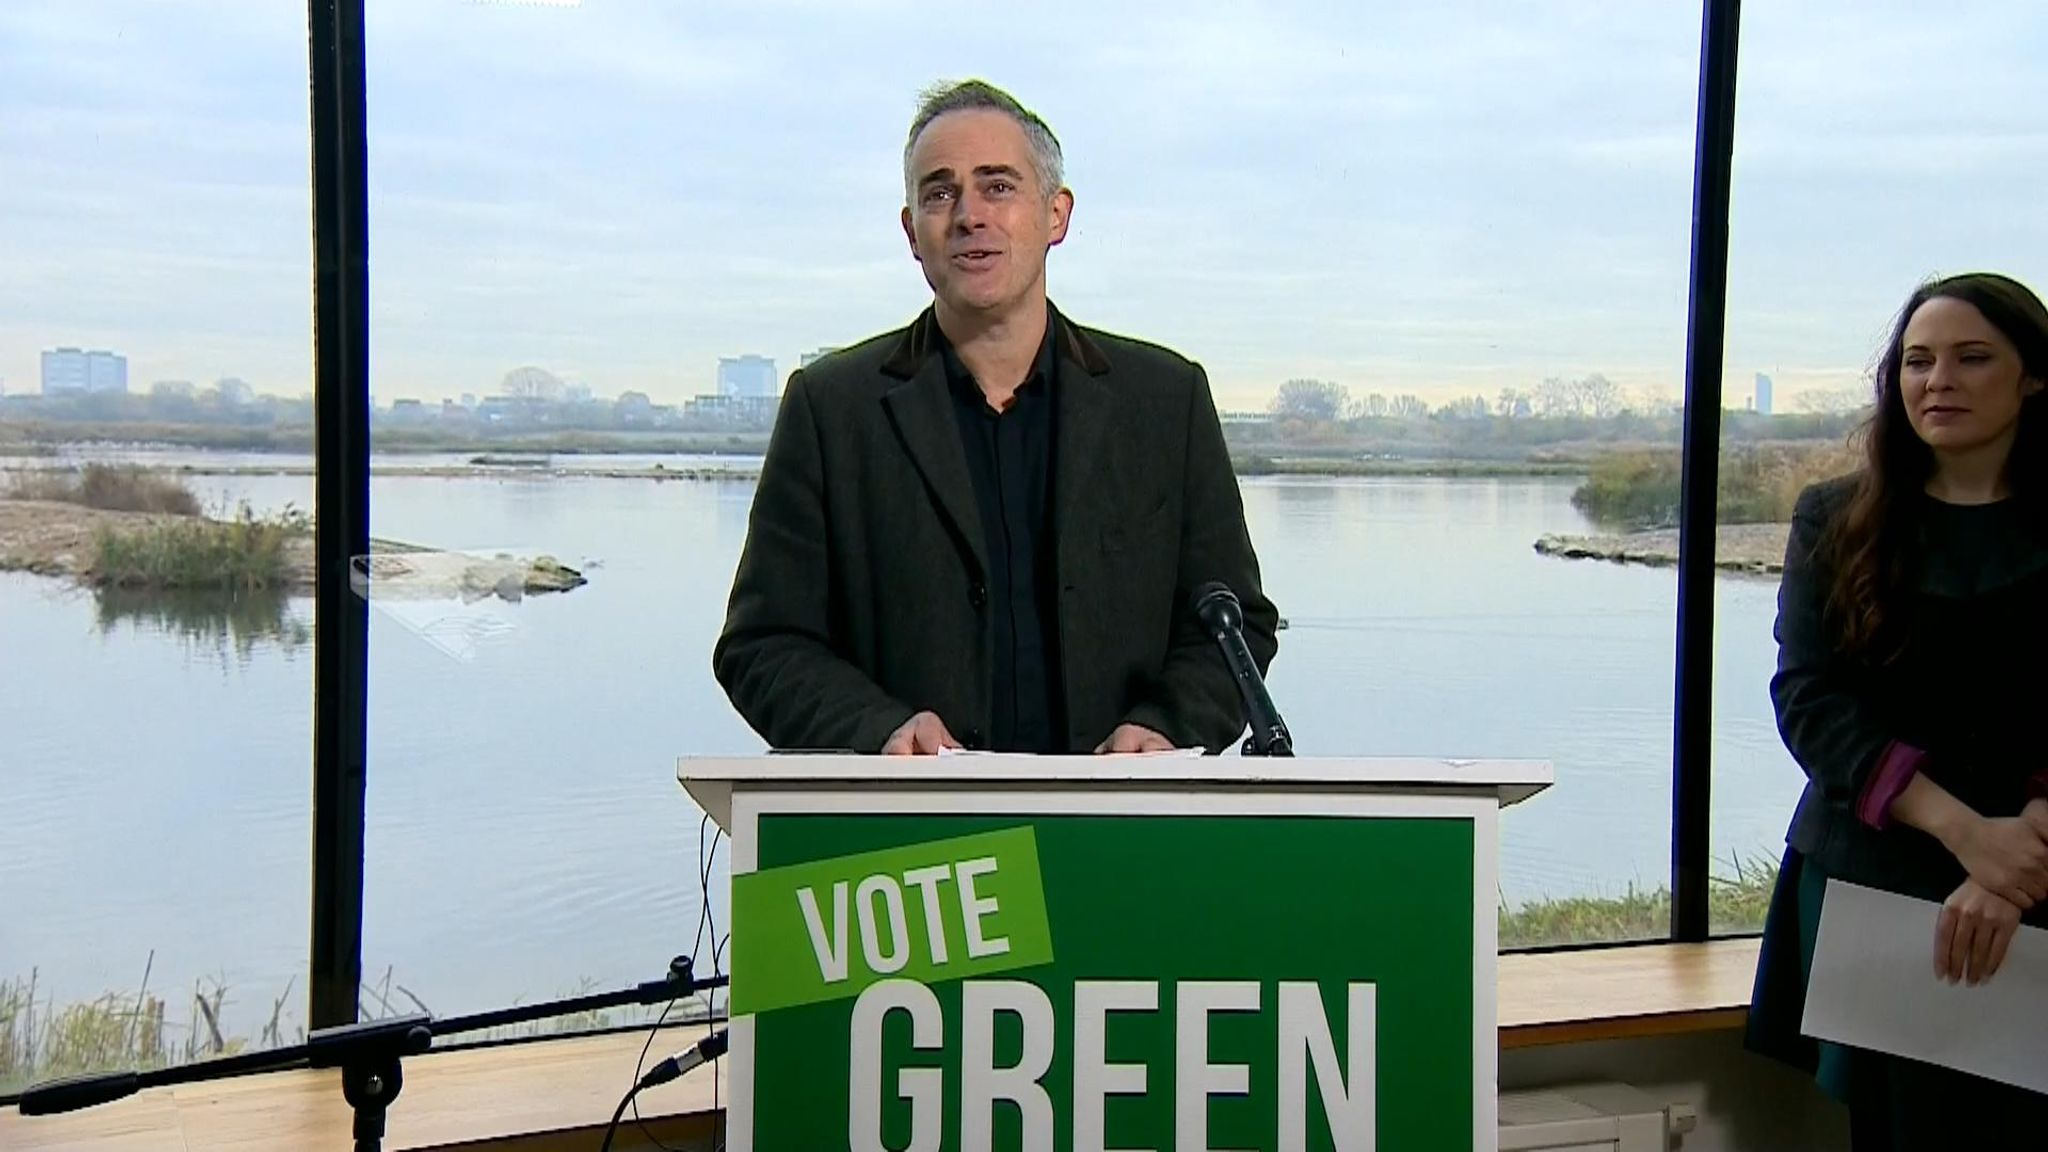 General election: Green Party unveil £100bn a year plan to tackle climate change